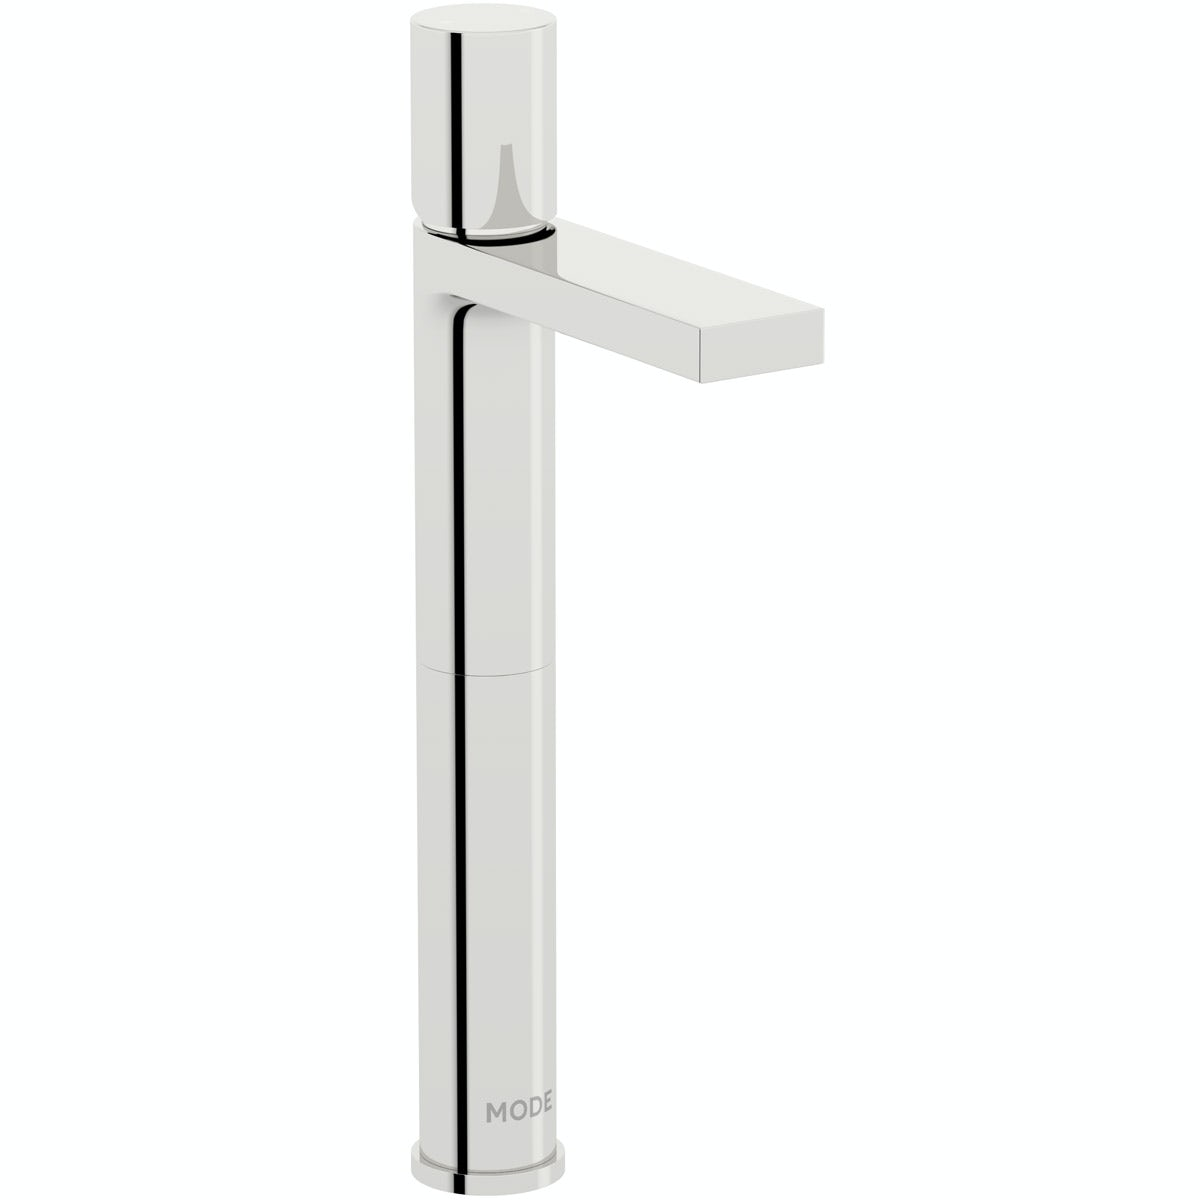 Mode Heath high rise basin mixer tap